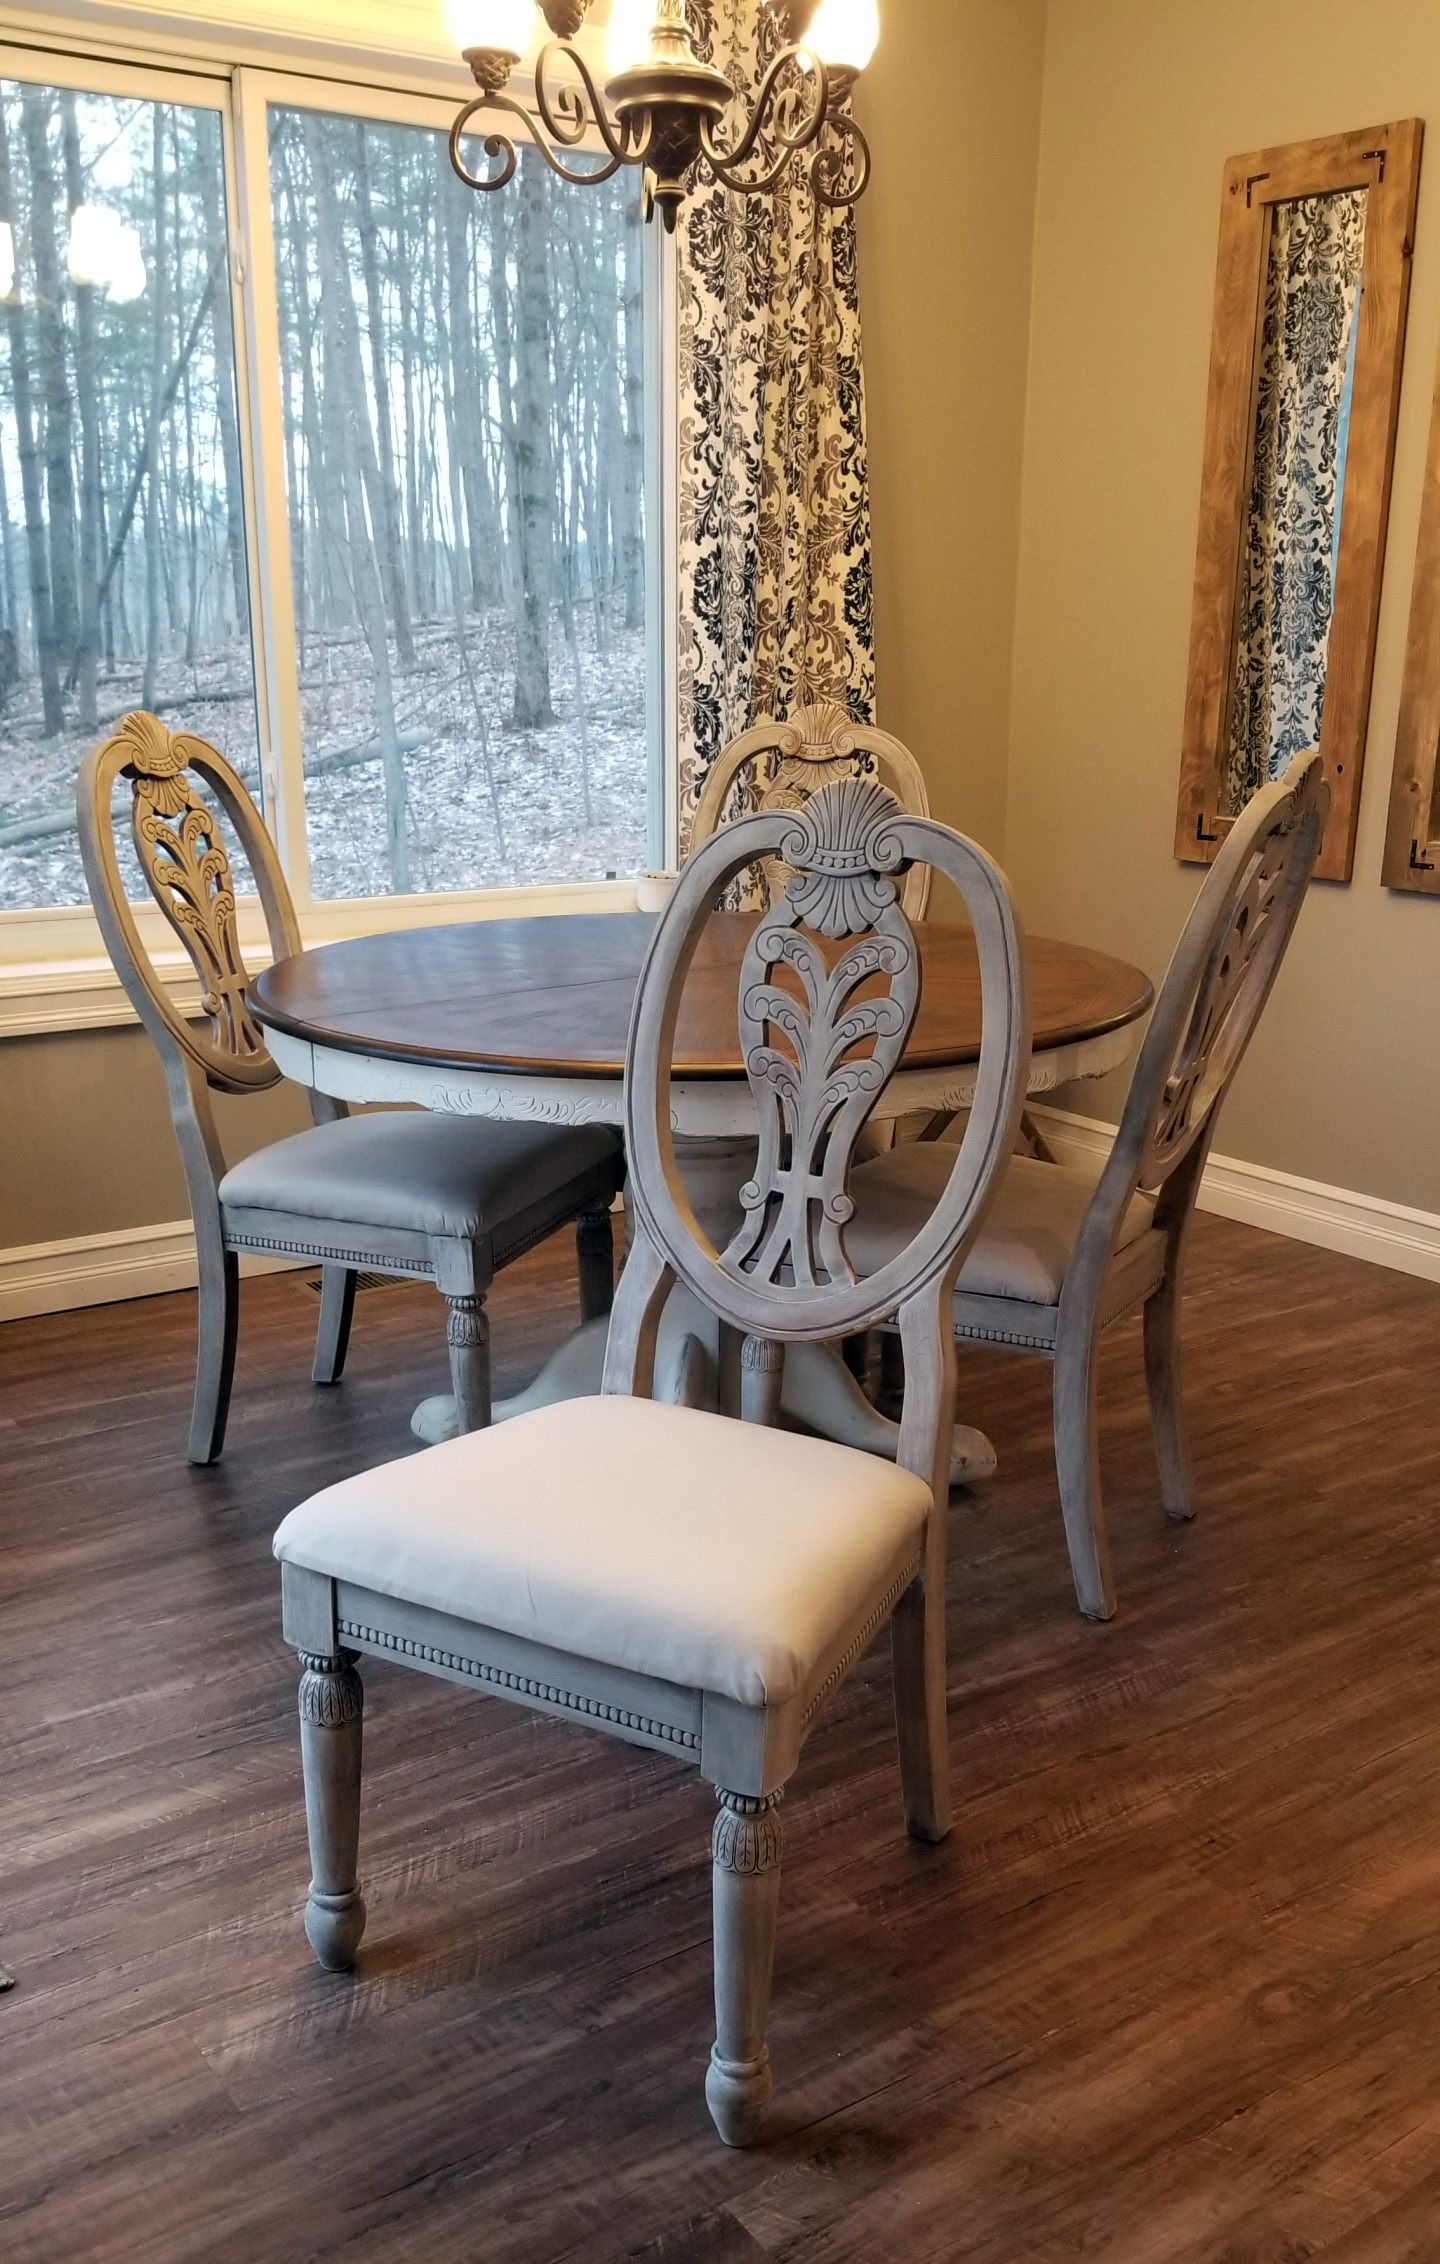 Whitewashed Dining Chair Makeover Grey Dining Room Chairs Whitewashed Chairs Painted Chairs Dining Room